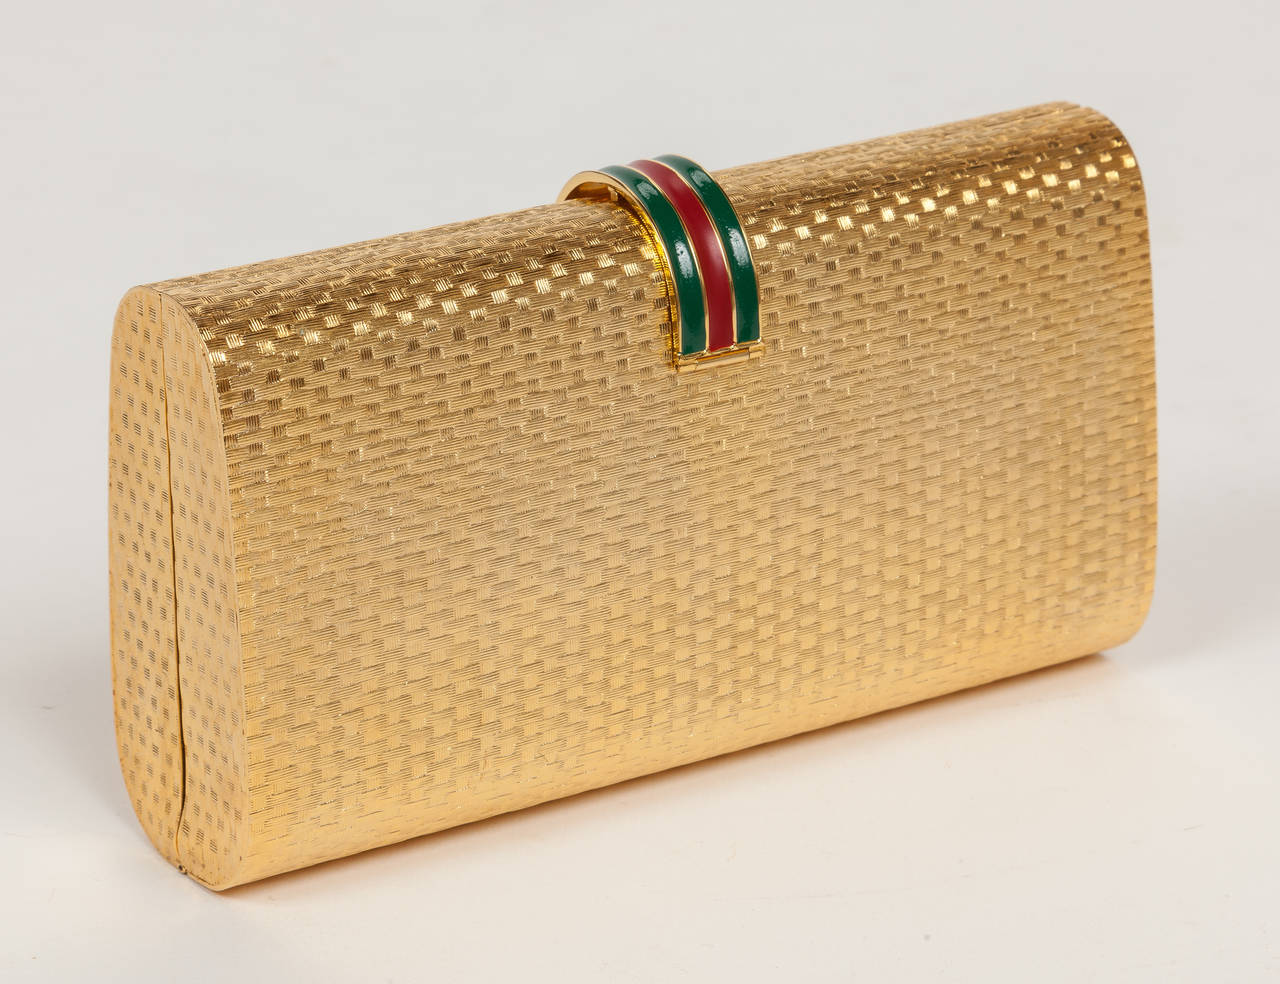 Iconic Gucci Gold Metal Minaudière Clutch w/Enameled Buckle Closure ca.1970s In Excellent Condition For Sale In Los Angeles, CA